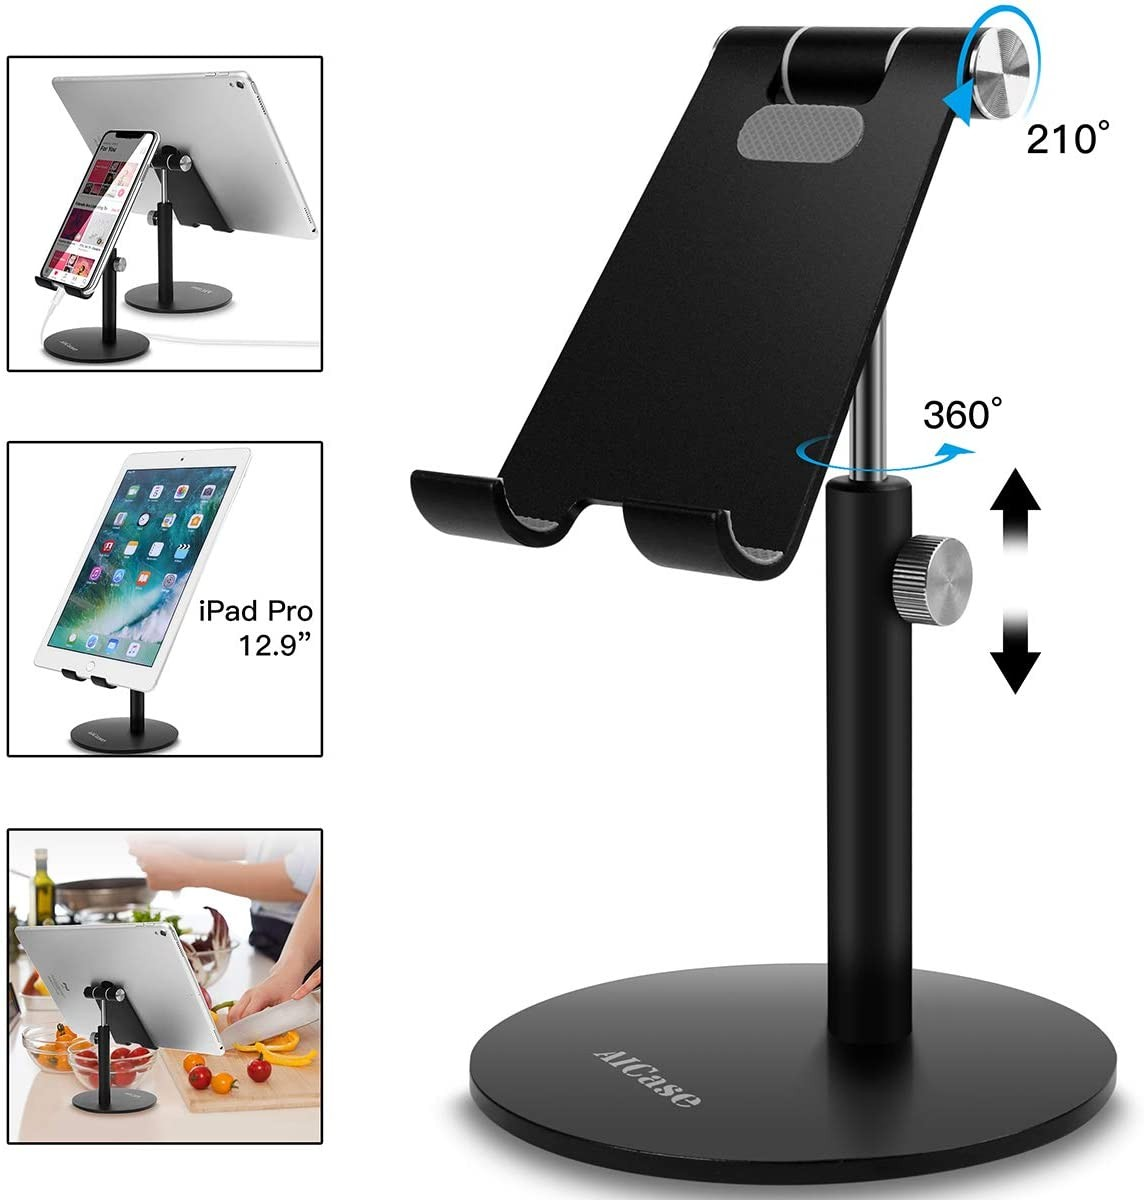 Aluminum Alloy Phone Stand Charging Mobile Dock BONUSIS Portable Cell Phone Stand Desktop Cellular Phone Mount Holder Compatible with iPhone Android Smart Phone and Other Cell Phones Black